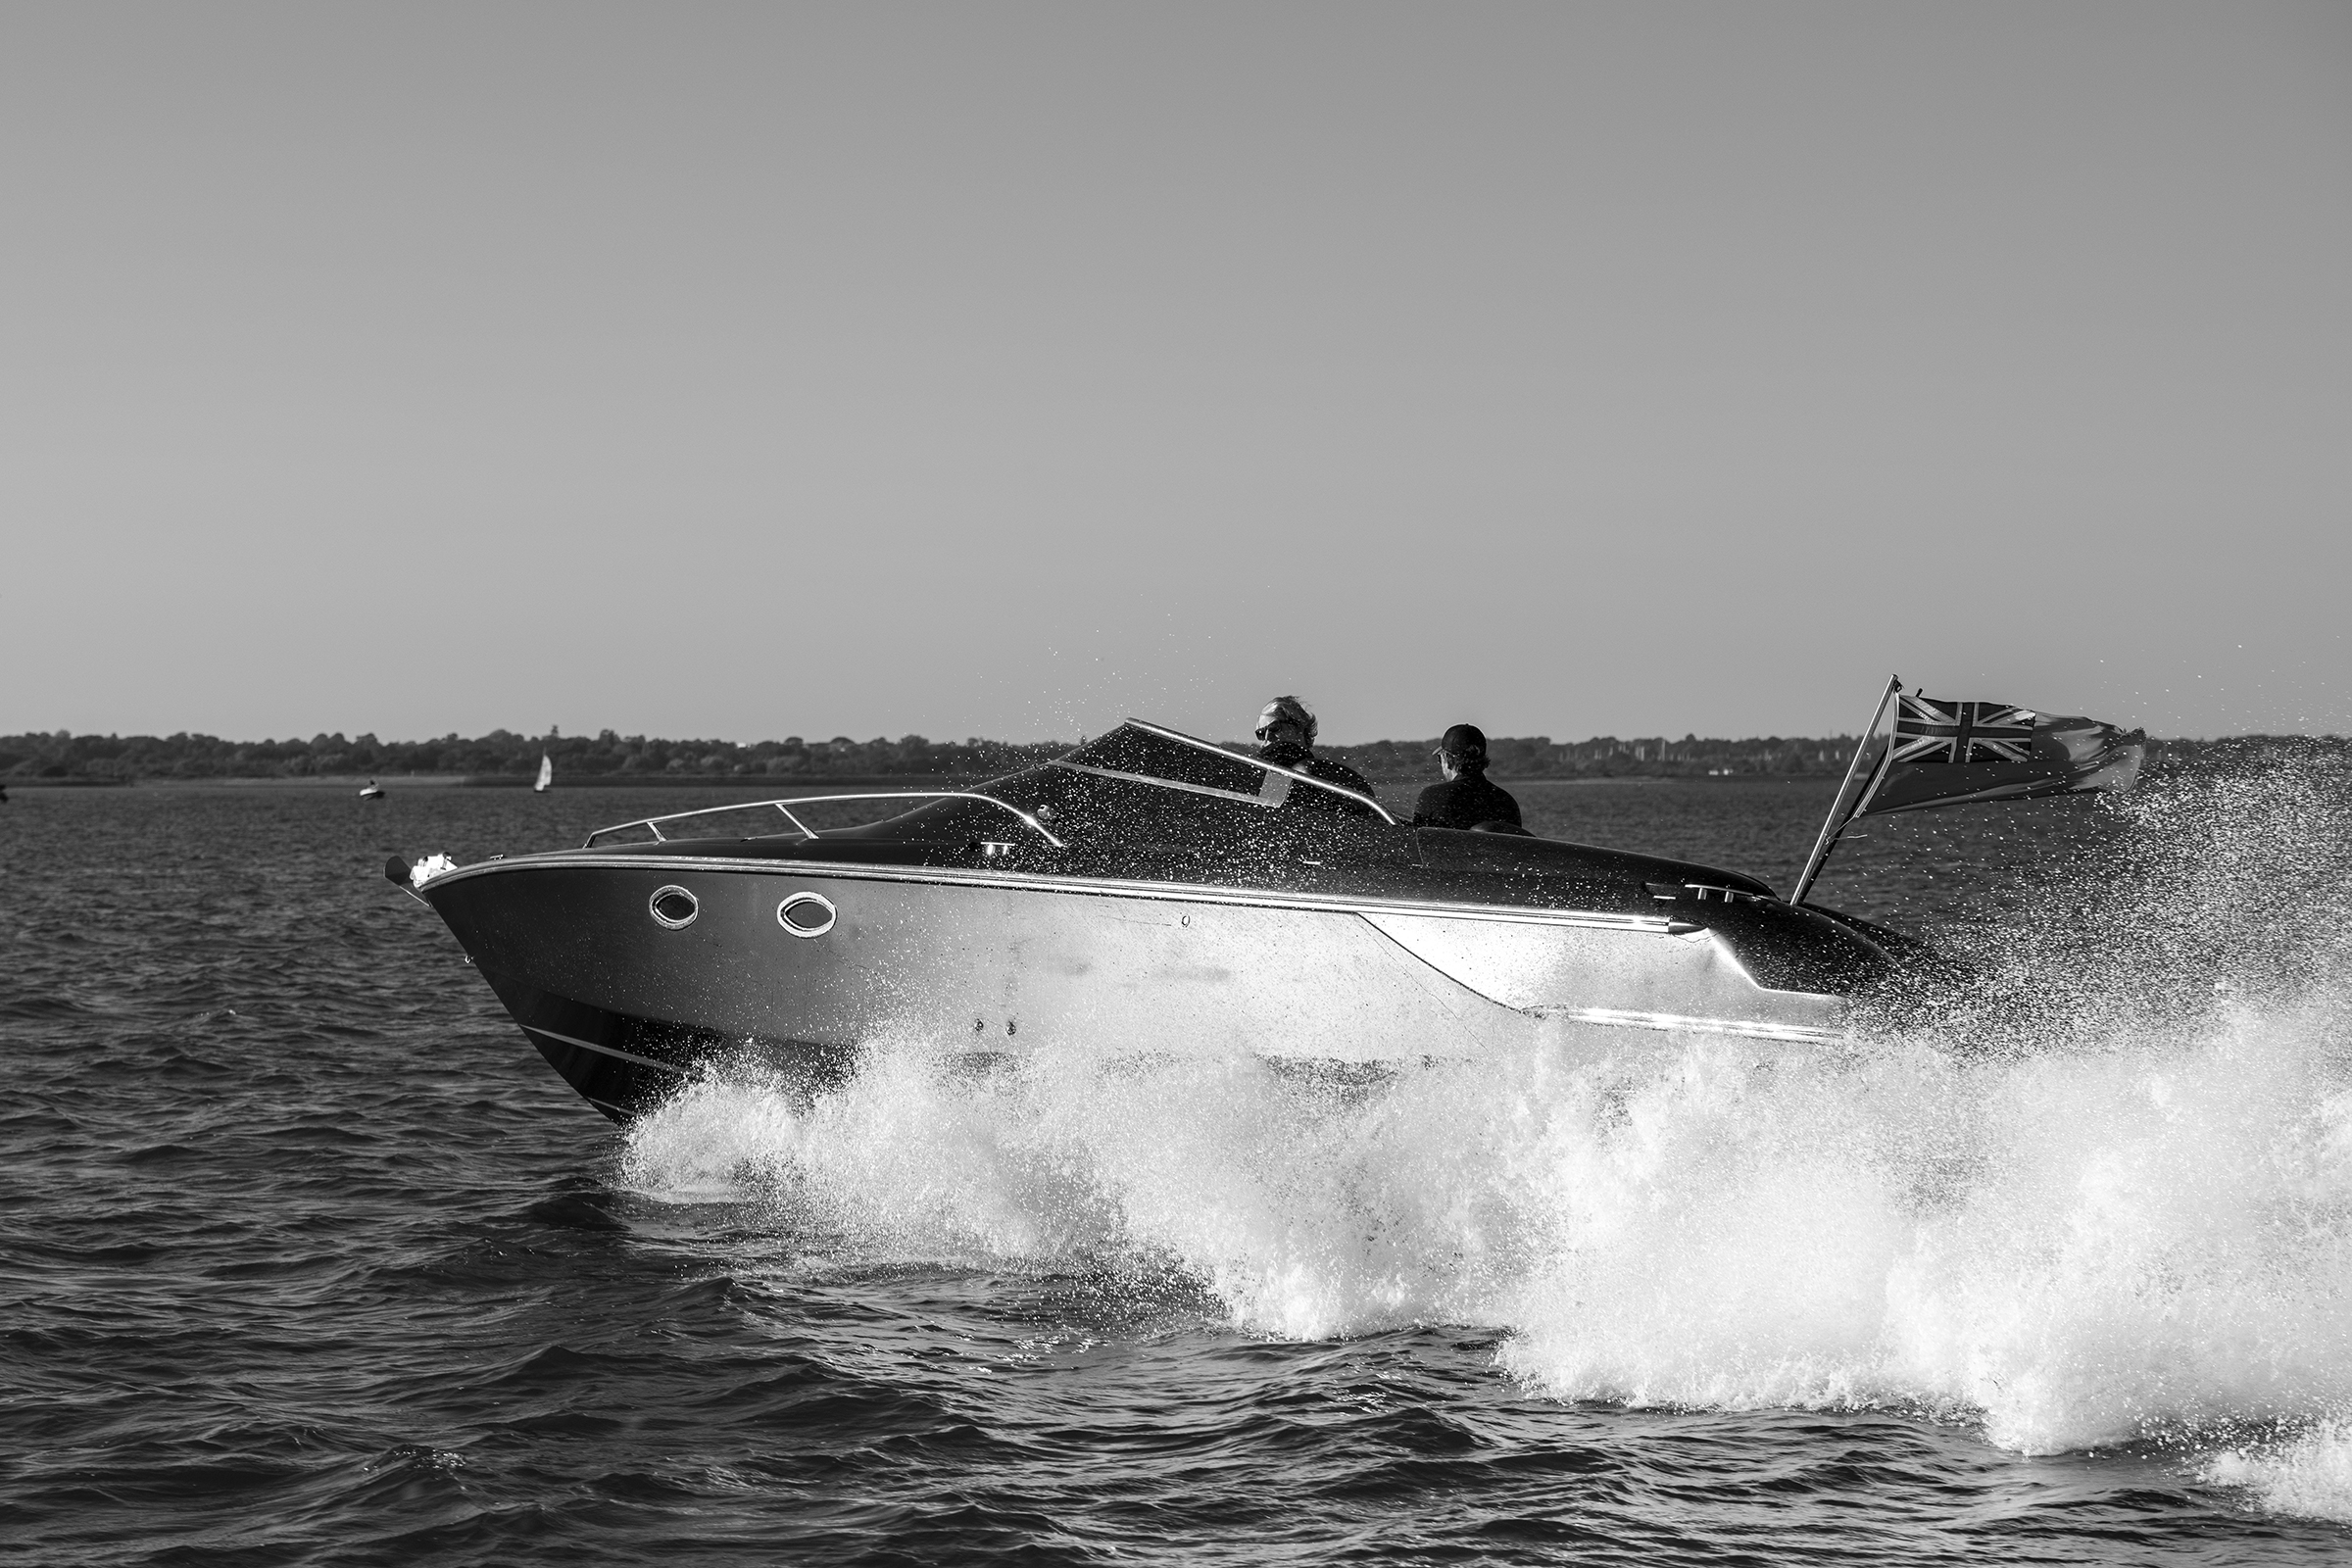 Visit the Isle of Wights with AERO Power Boat Charters Lymington